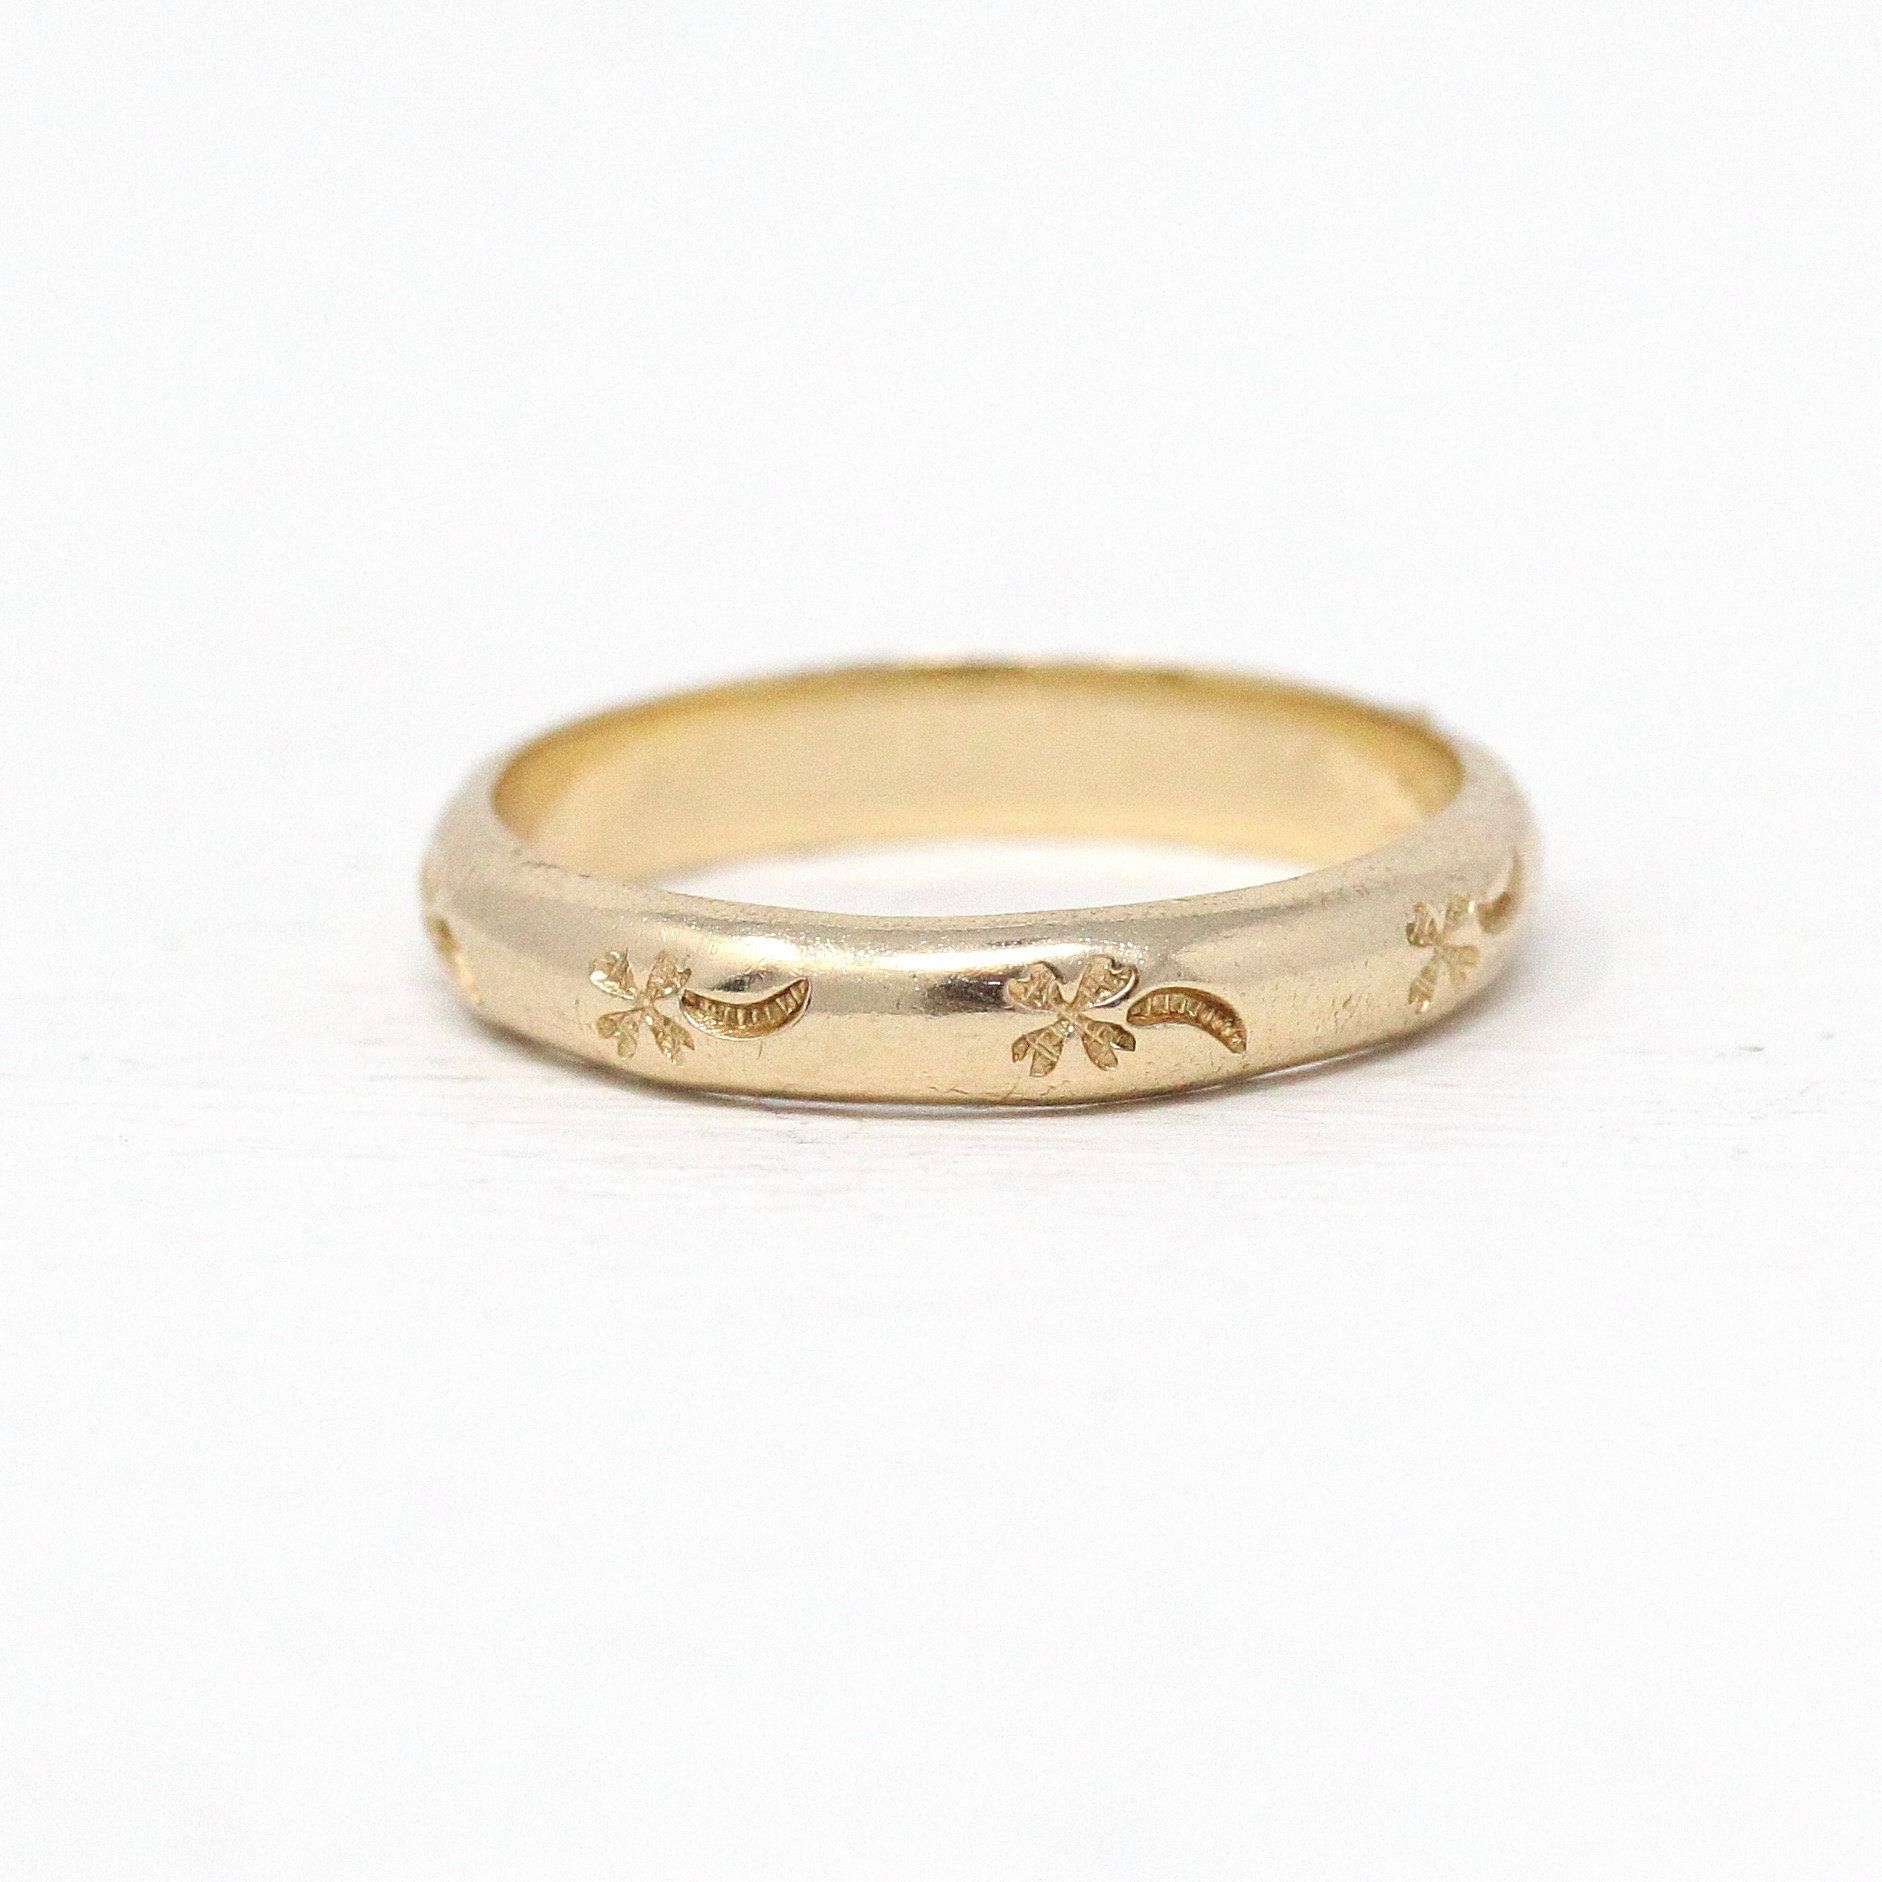 Gold Floral Wedding Band For Women Vintage Style Wedding Ring Ring For Her Gold Wedding Ring Anniversary Ring In 2020 Wedding Rings Unique Wedding Rings Vintage Floral Wedding Bands